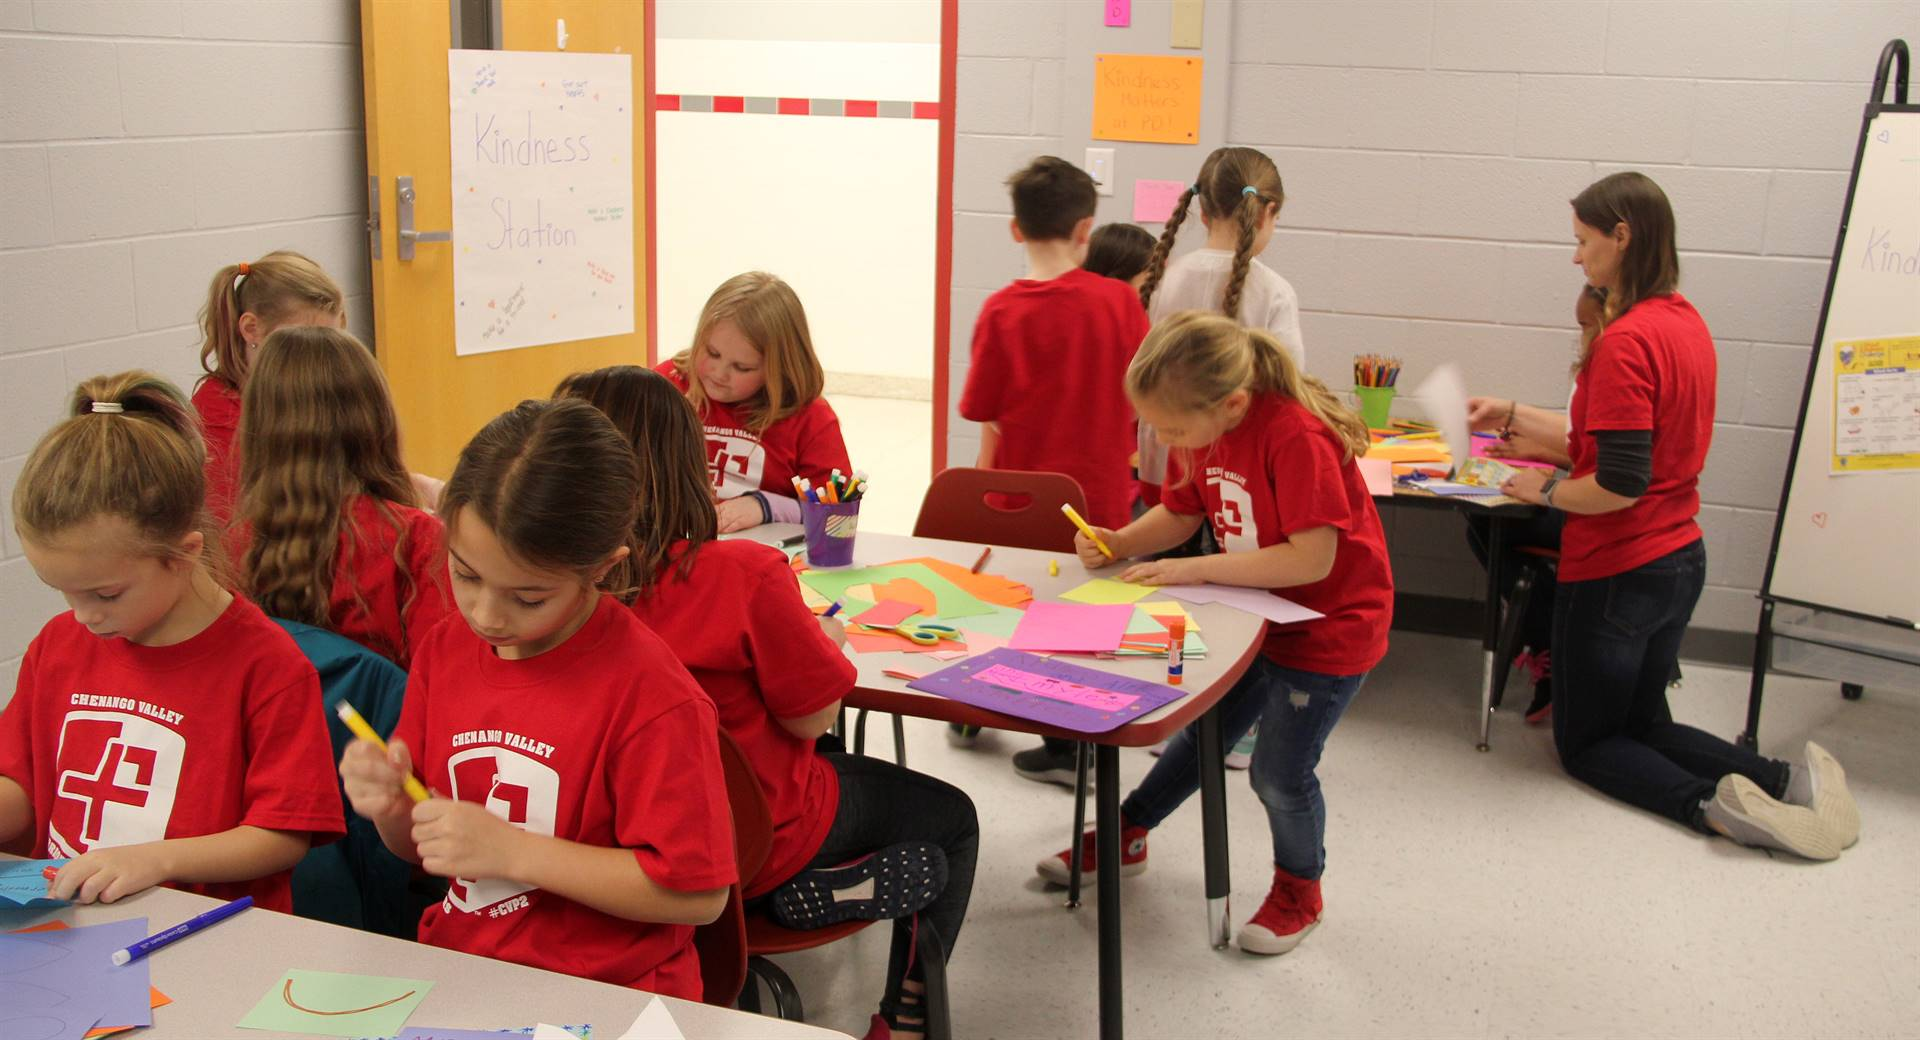 port dickinson warriors in kindness station room